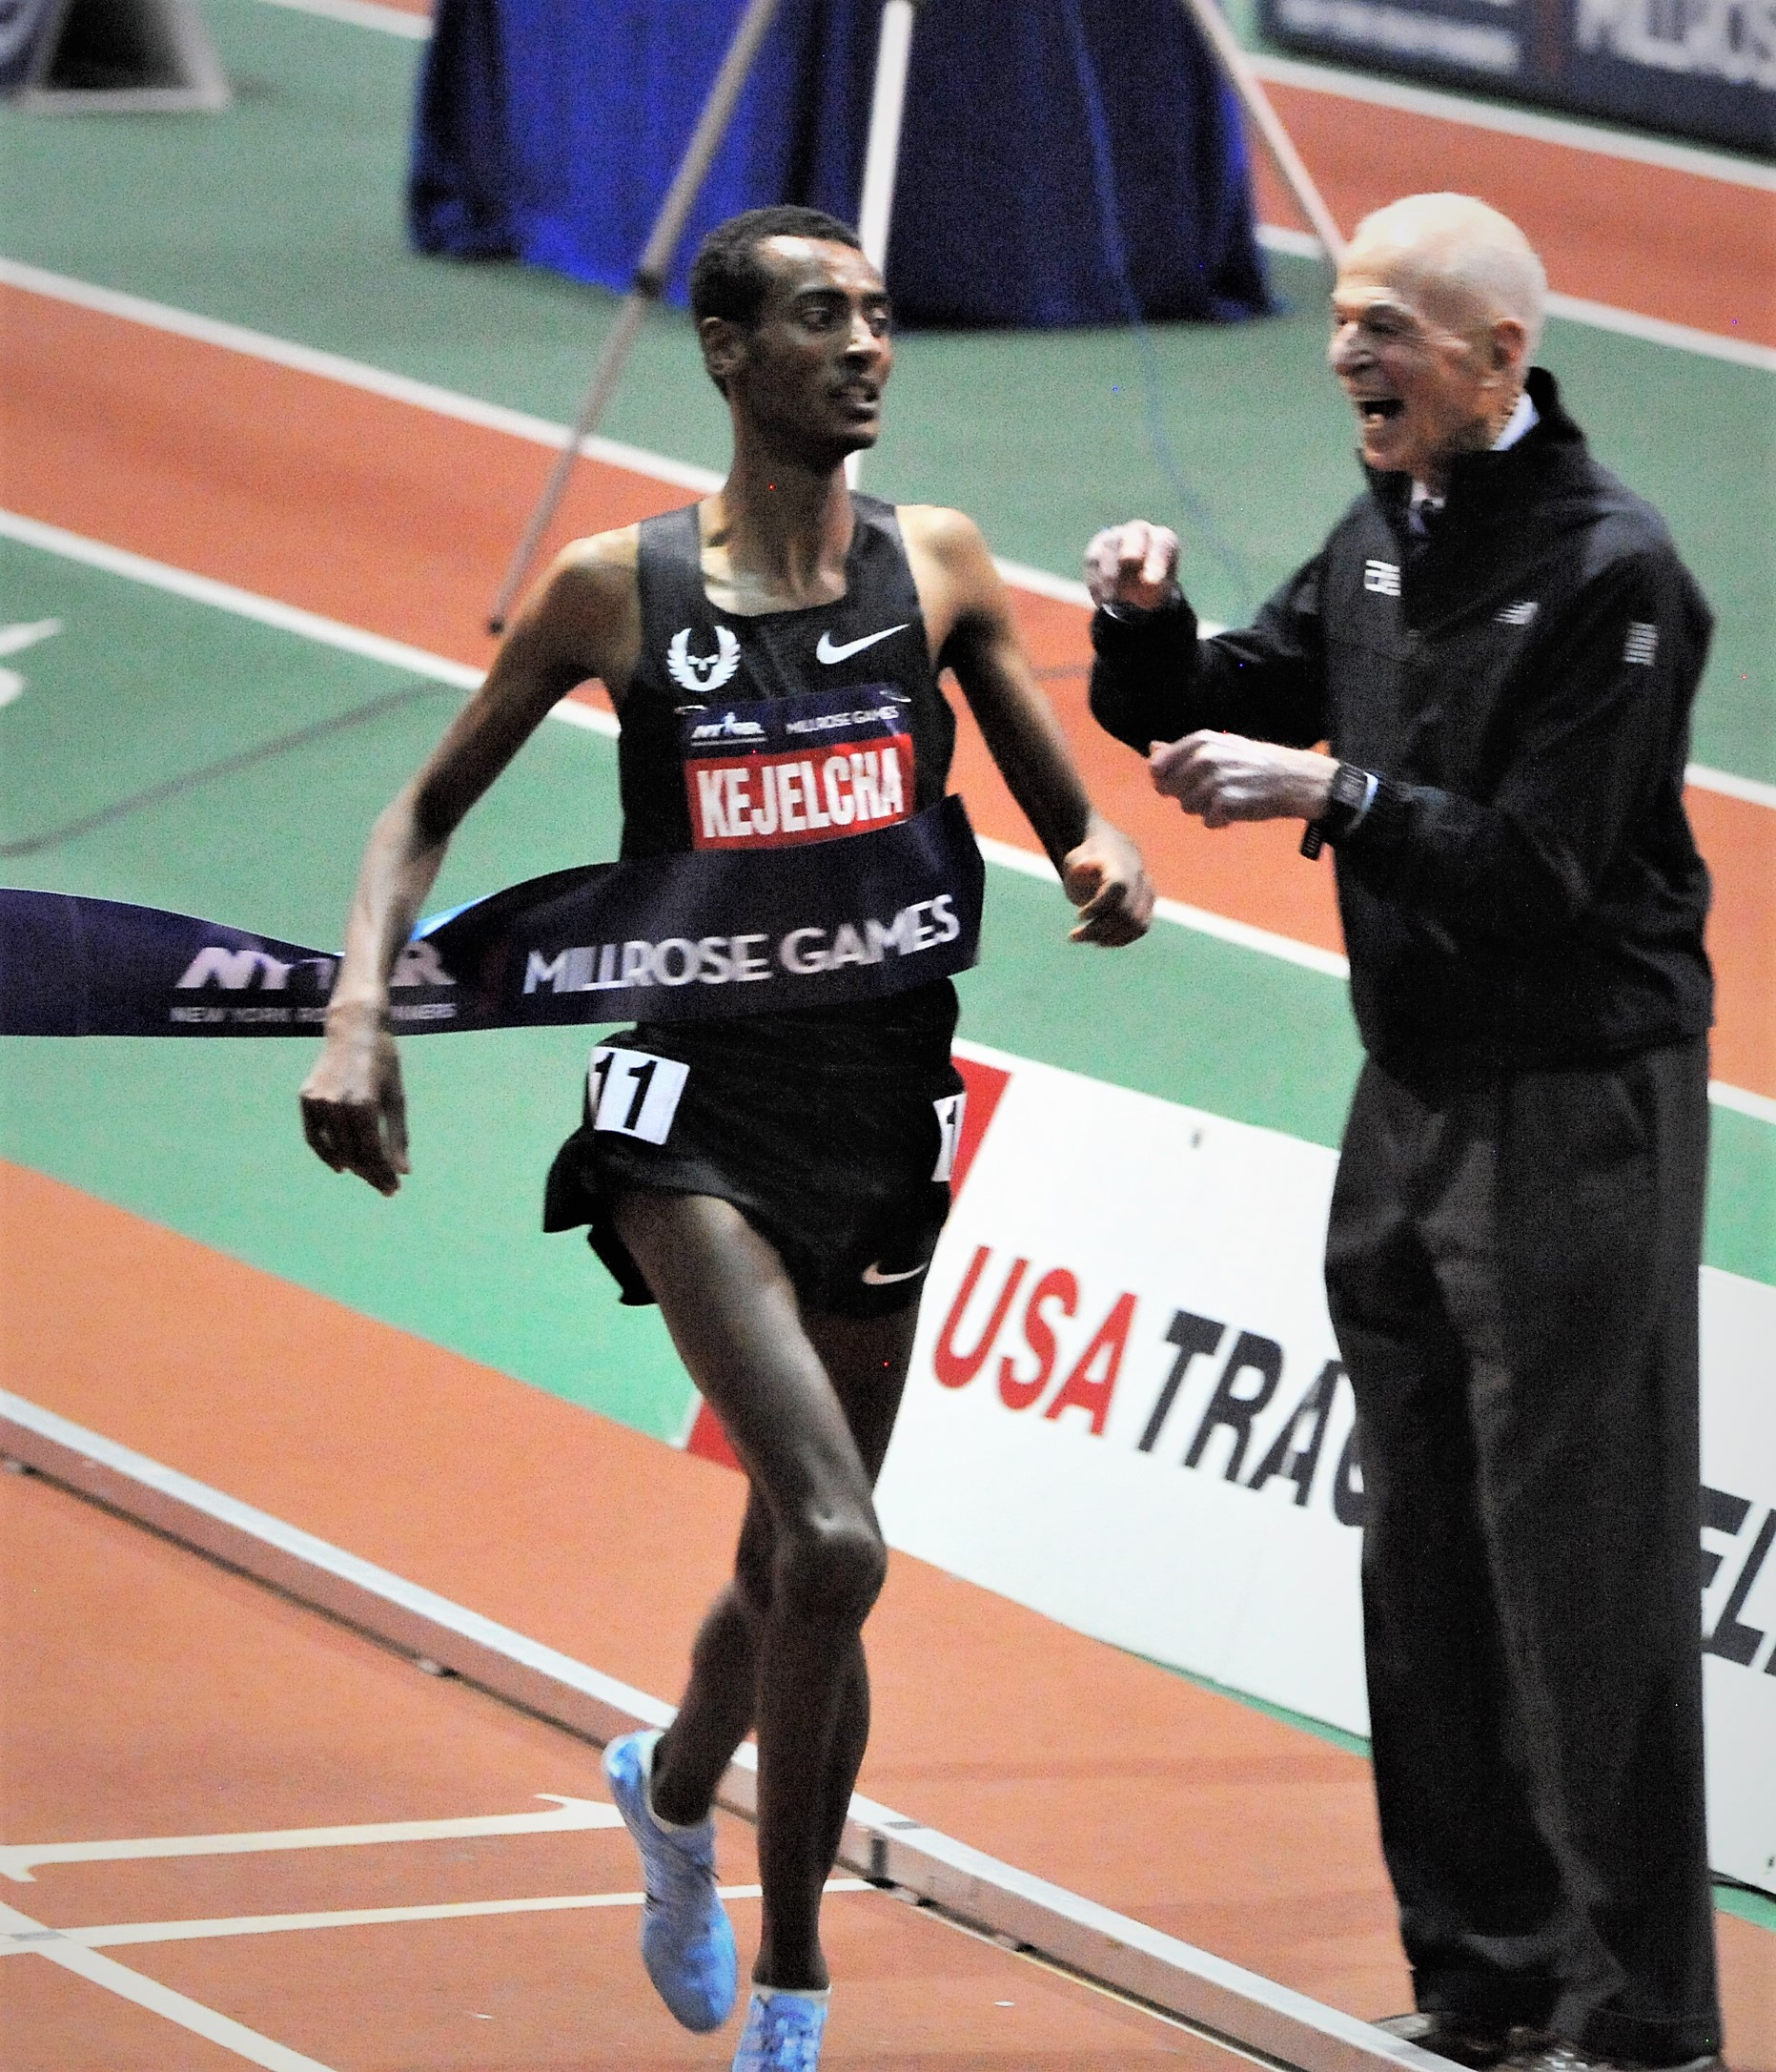 Kejelcha winning Millrose in February (Photo by Phil Bond)